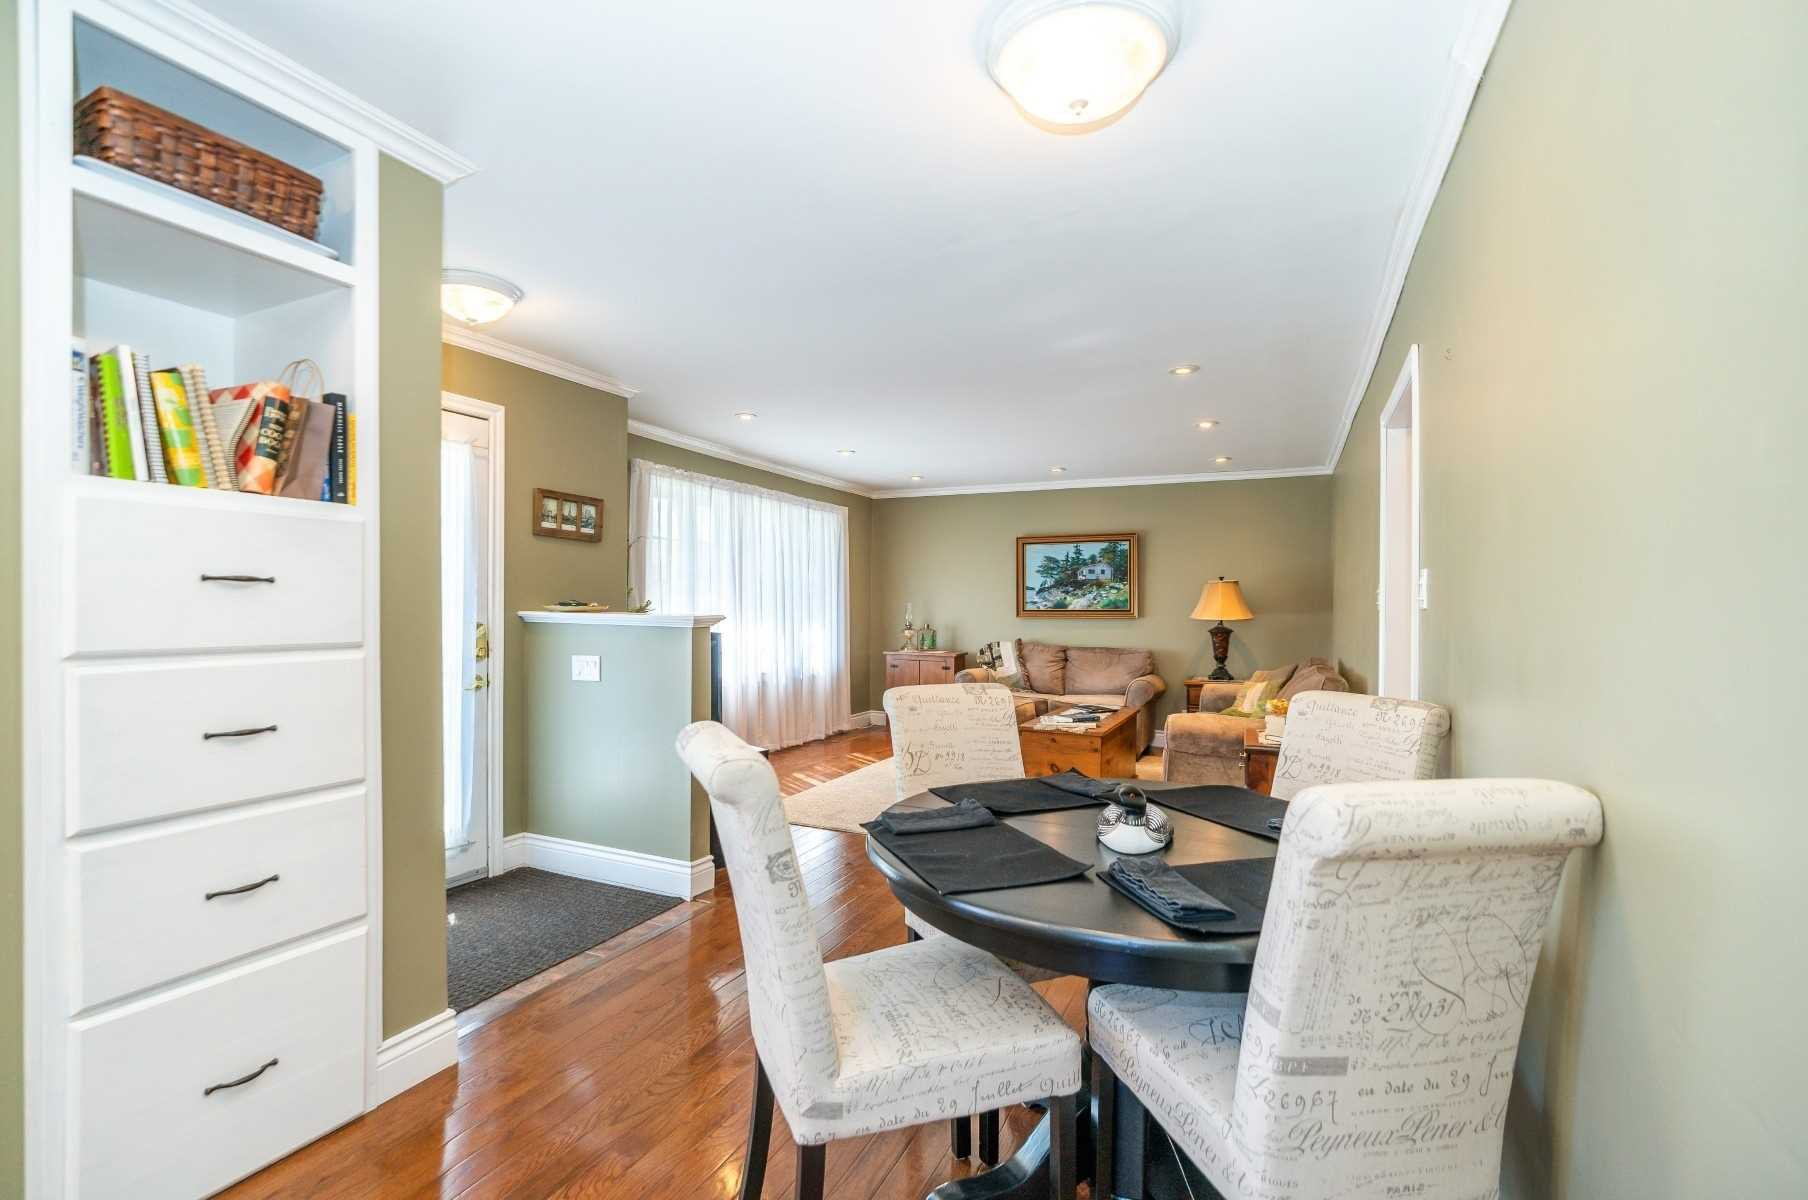 Photo 38: Photos: 40 Eastlawn Street in Oshawa: Donevan House (Bungalow) for sale : MLS®# E4769026